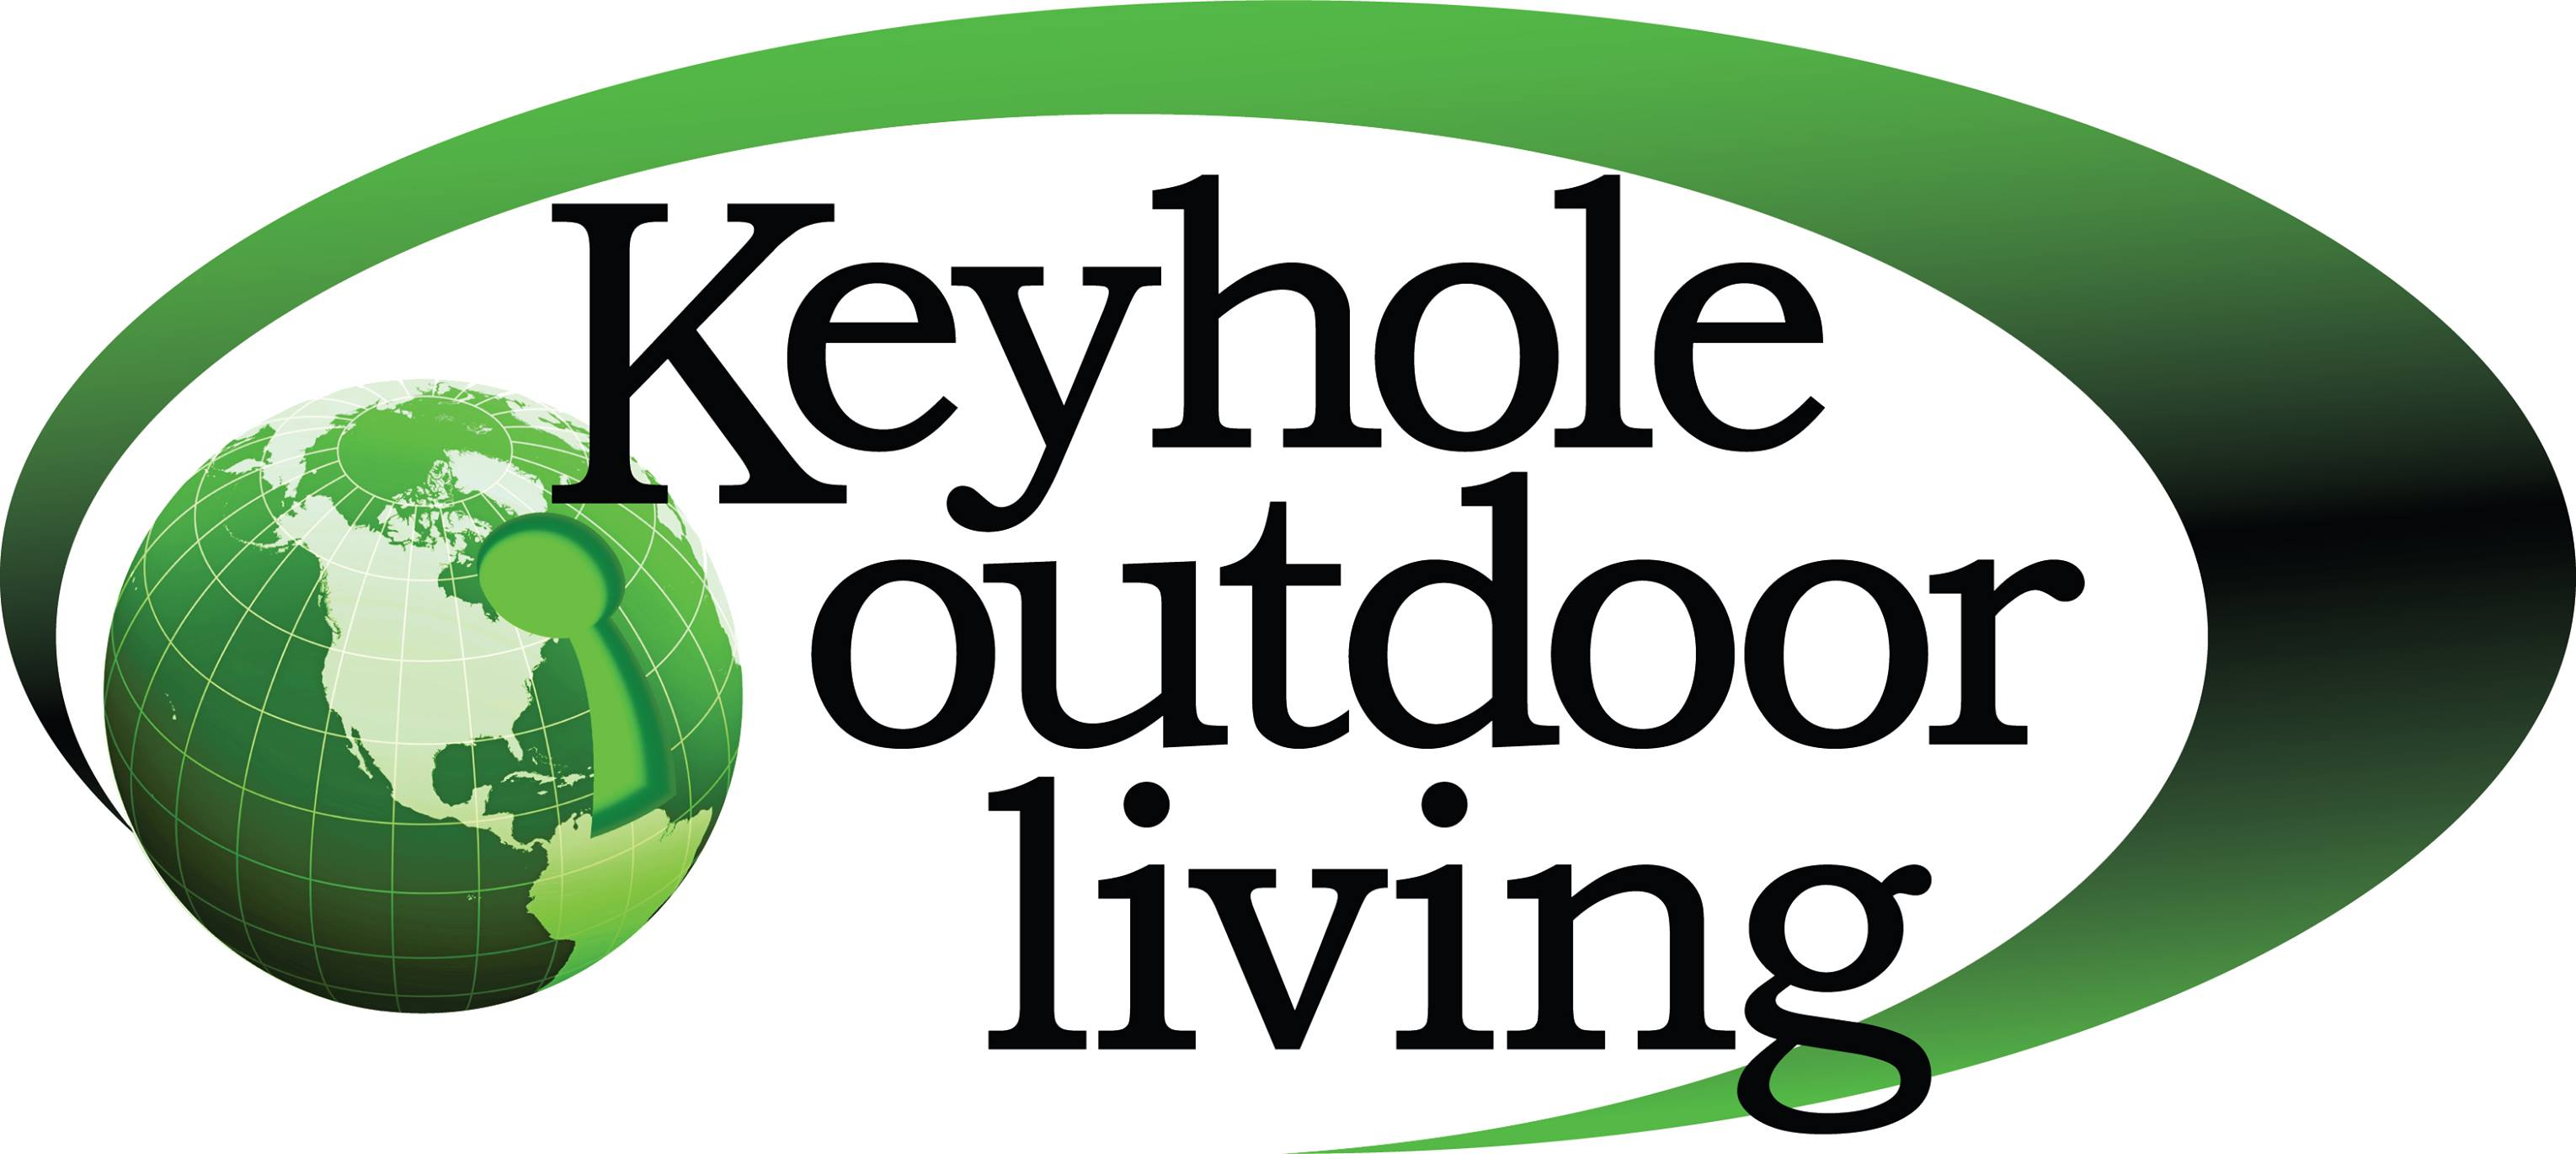 Keyhole Outdoor Living.